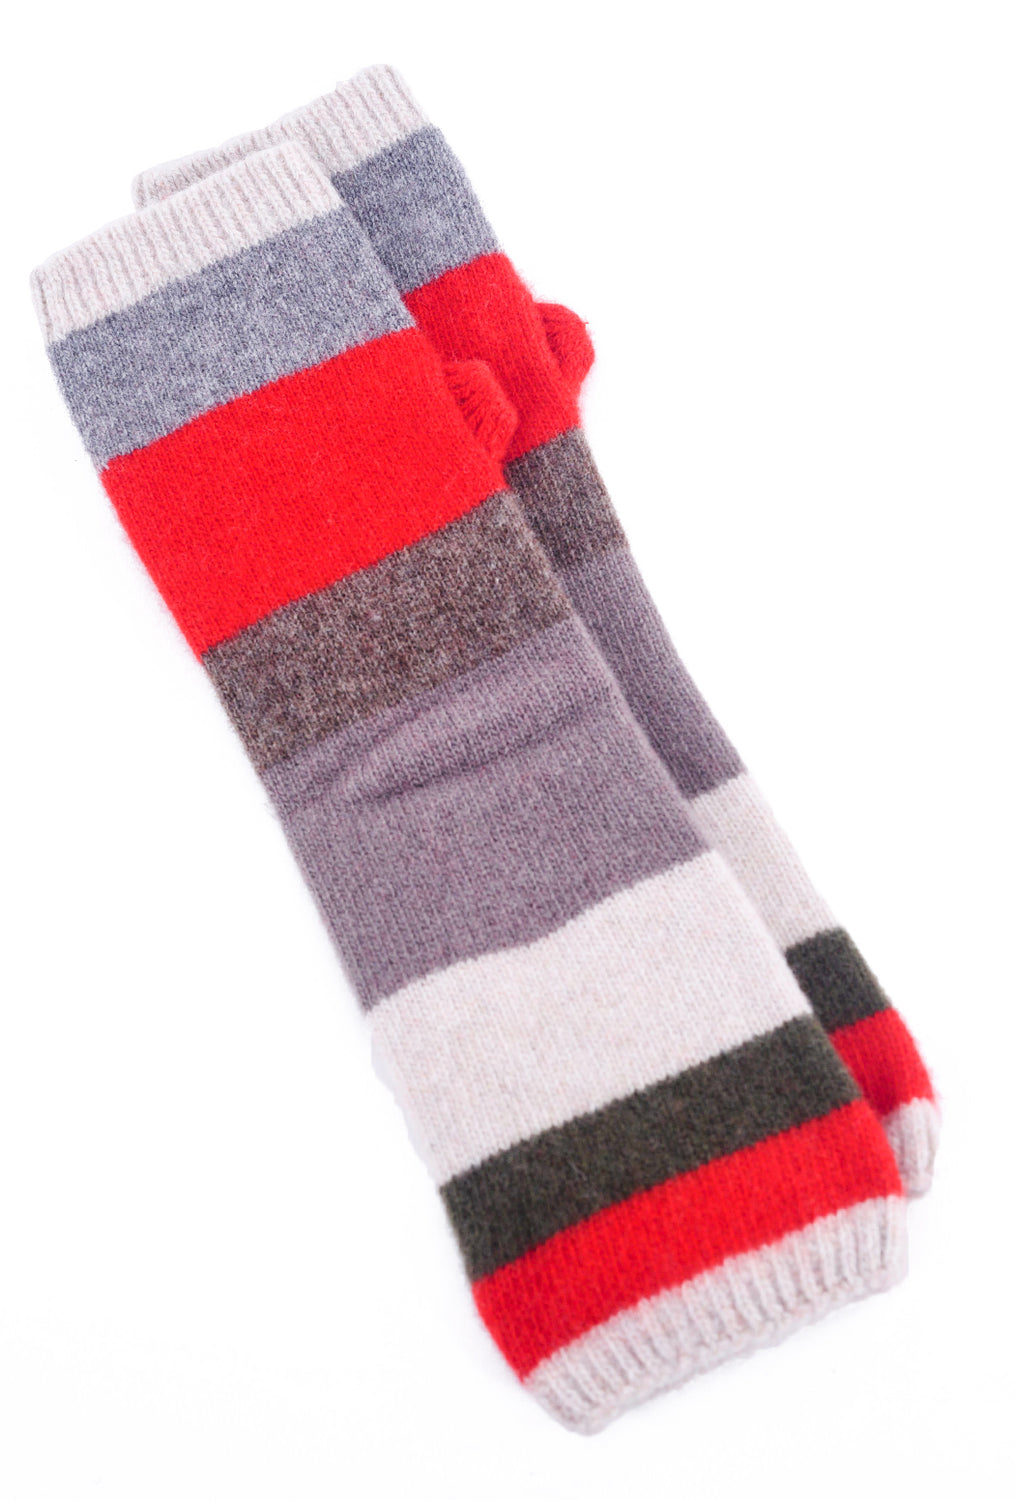 Santacana Madrid Fingerless Long Cashmere Gloves, Cream/Red One Size Cream